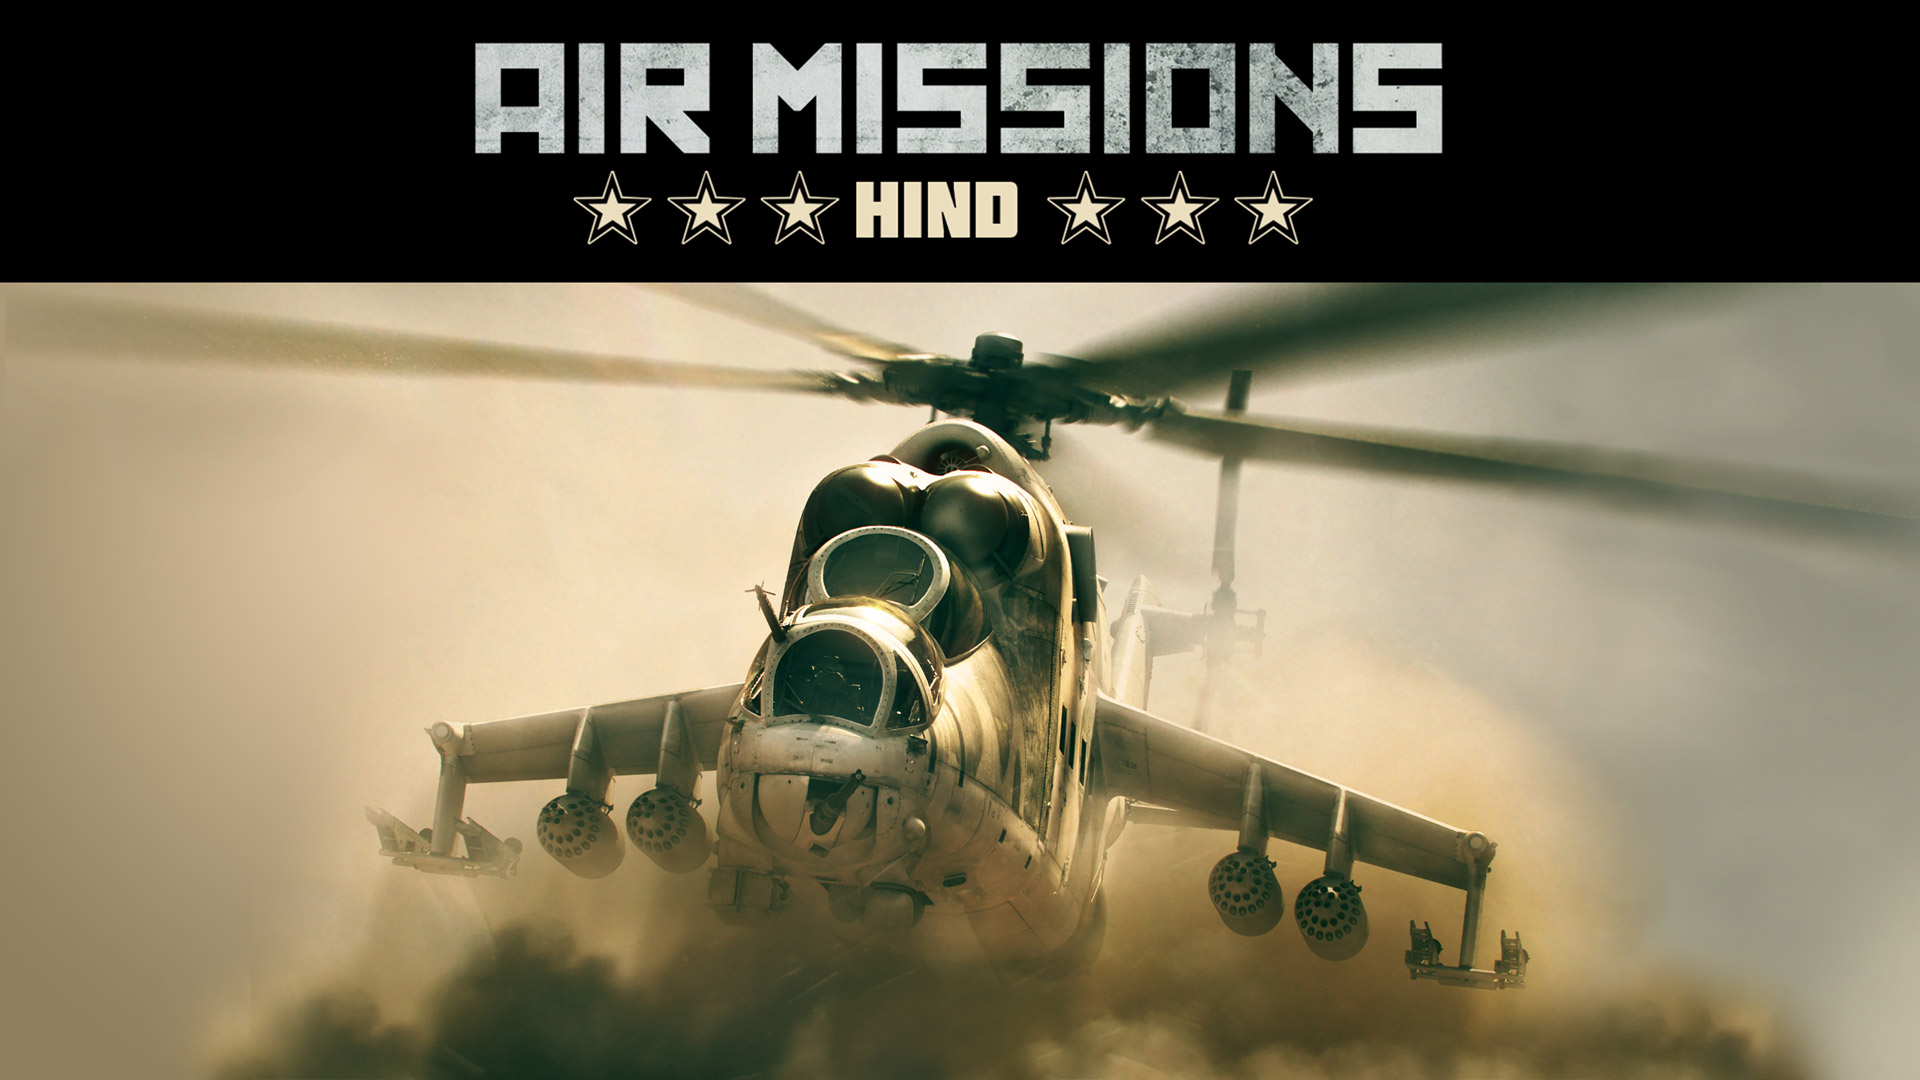 Free Air Missions: HIND Wallpaper in 1920x1080